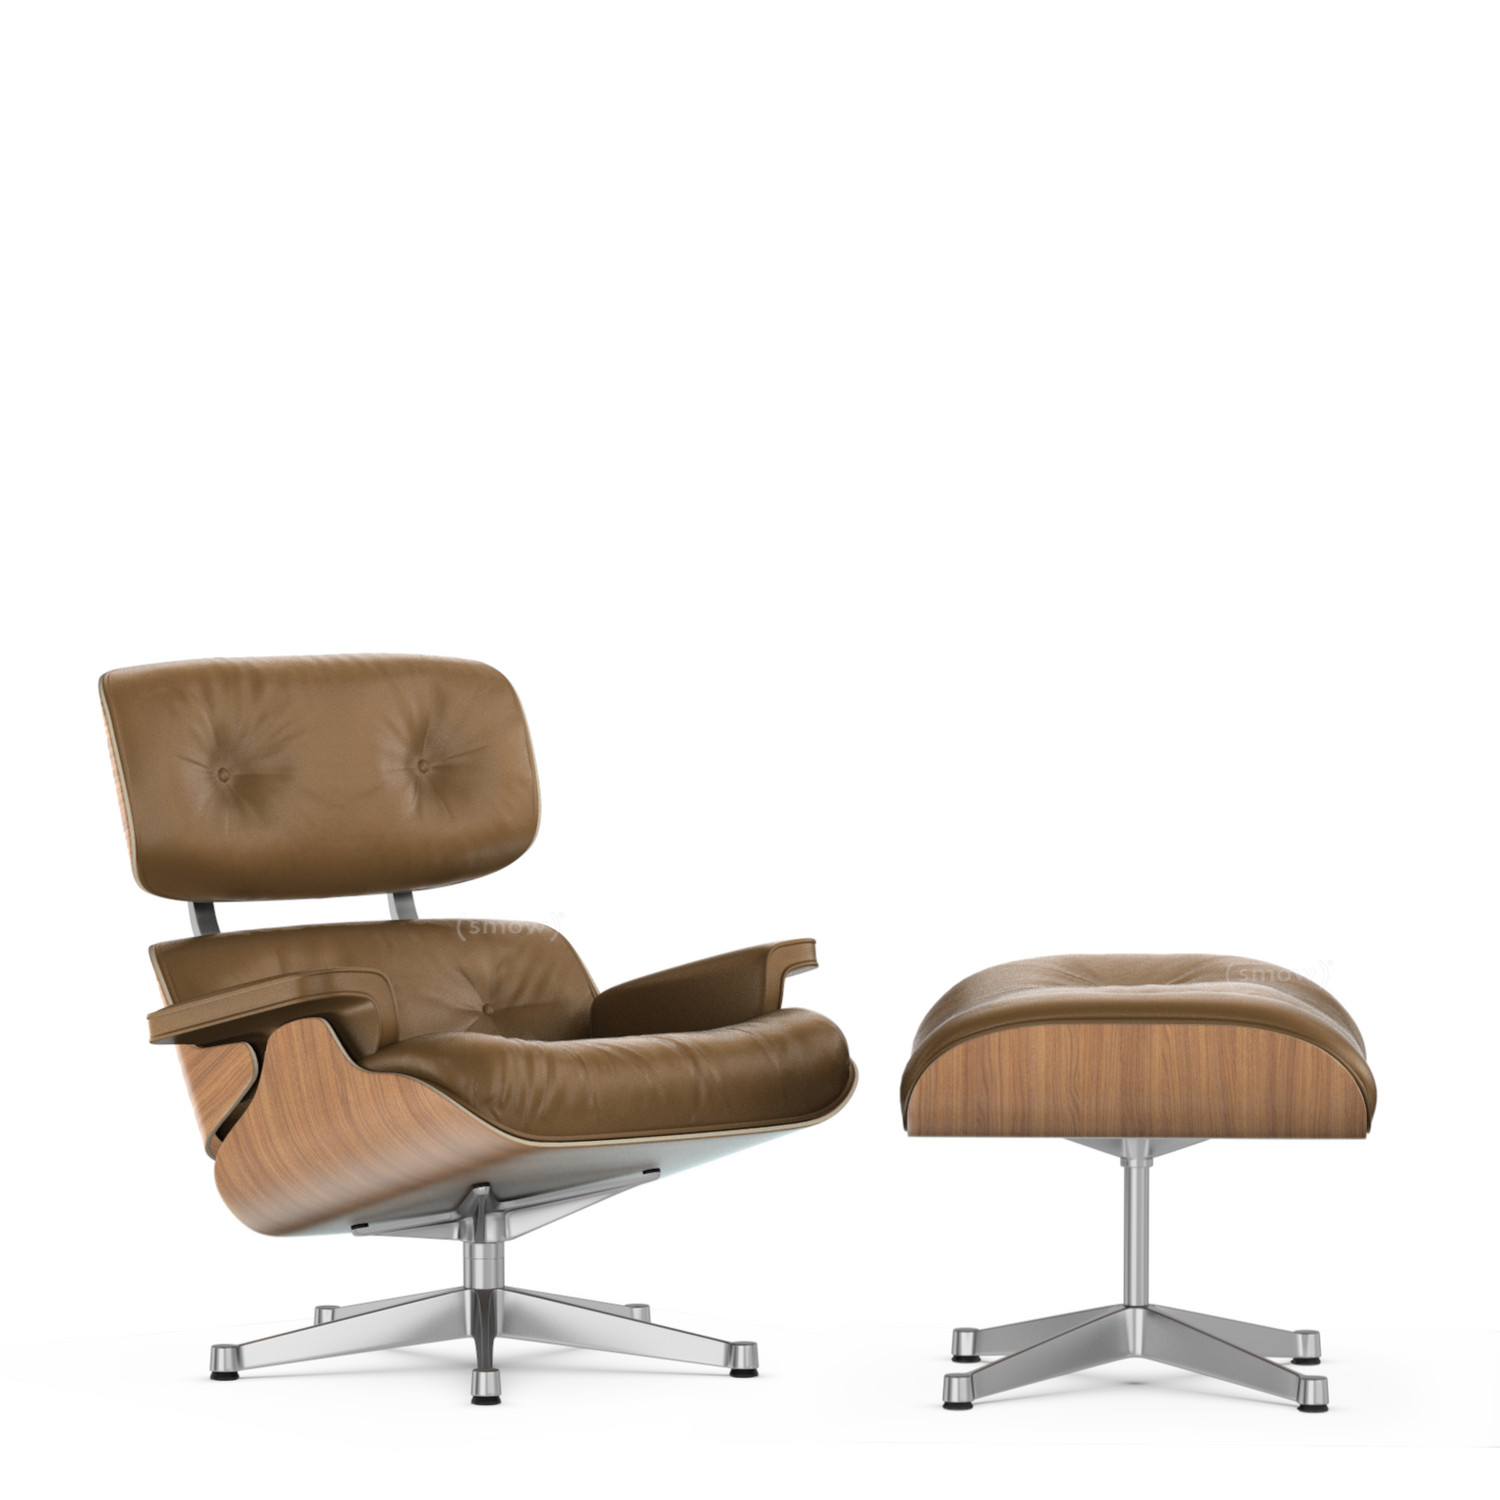 Vitra Lounge Chair Ottoman Beauty